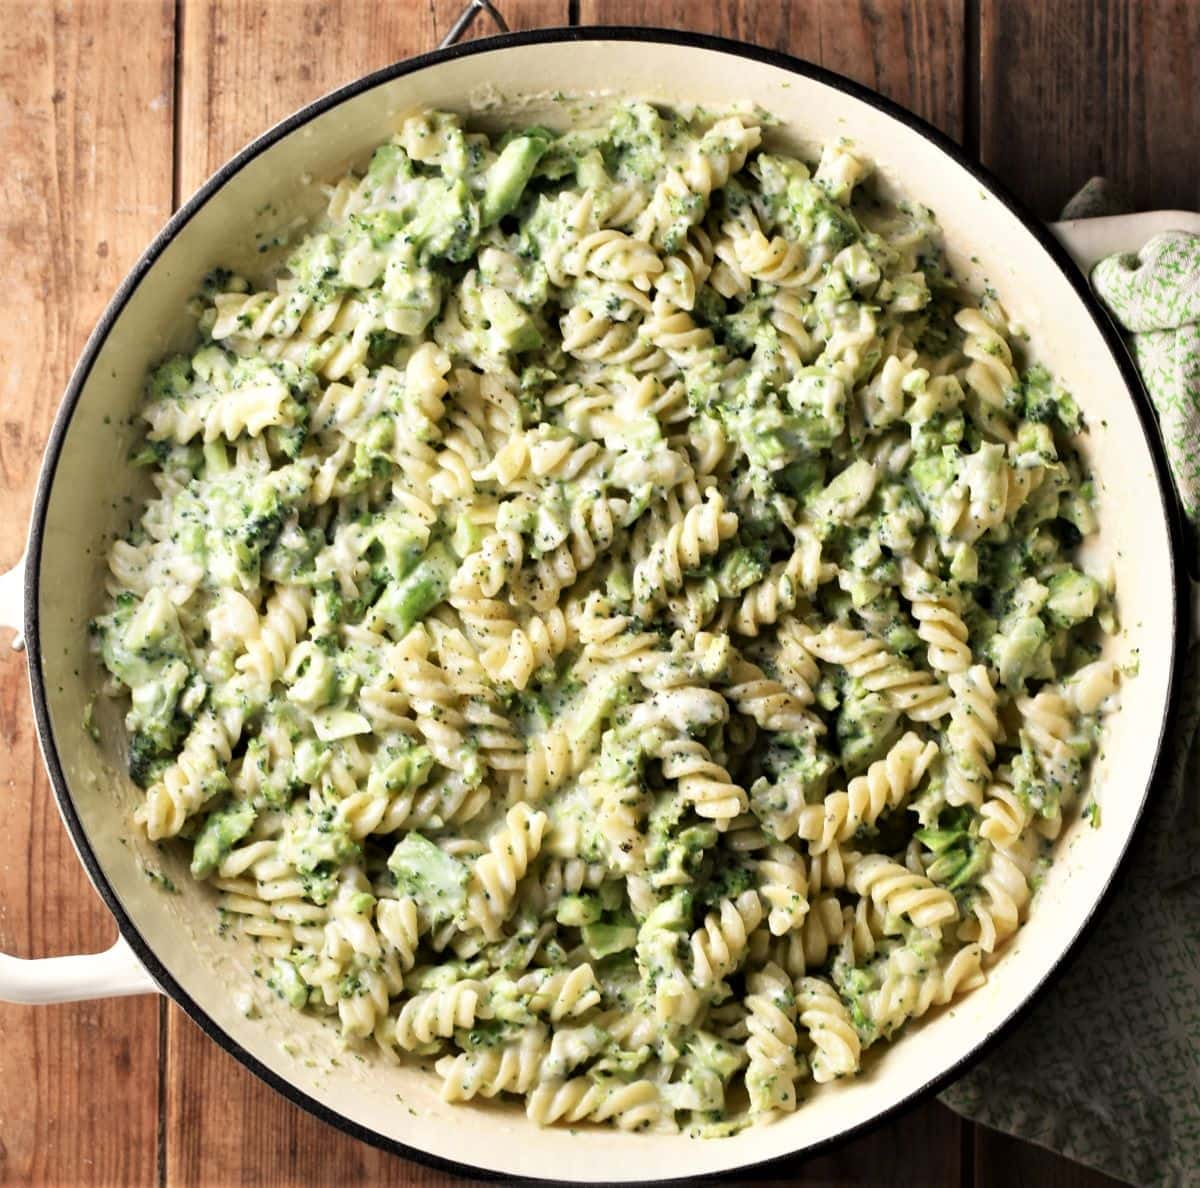 Pasta and broccoli in creamy sauce in large shallow white pan.